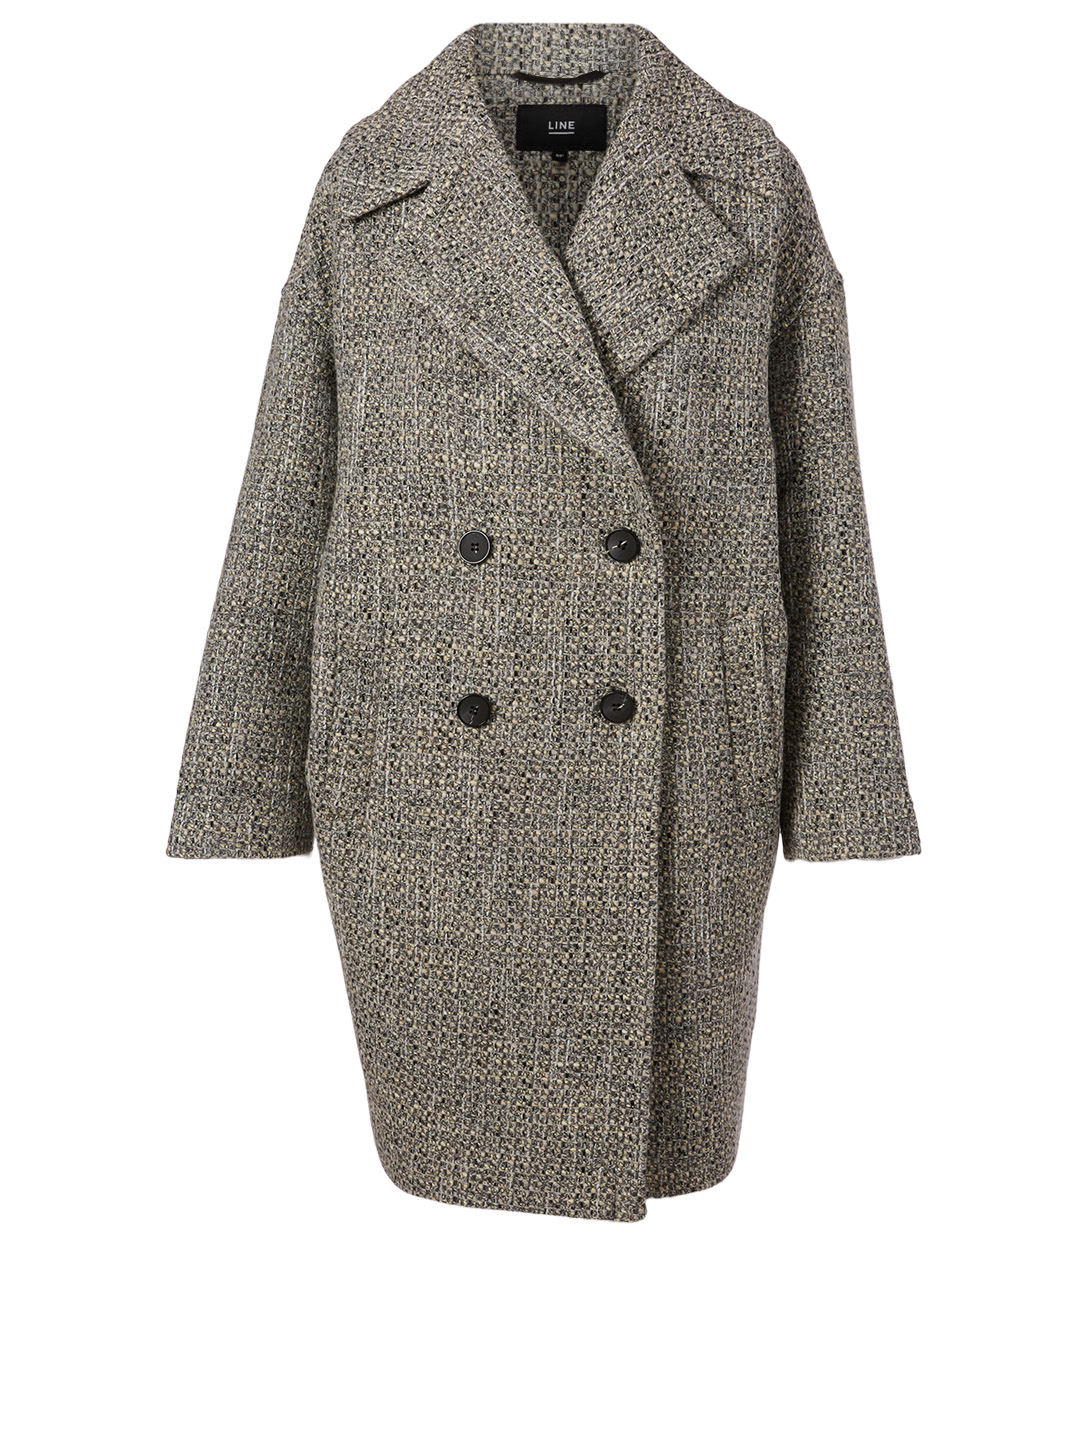 LINE Maxine Wool-Blend Double-Breasted Coat Designers Black